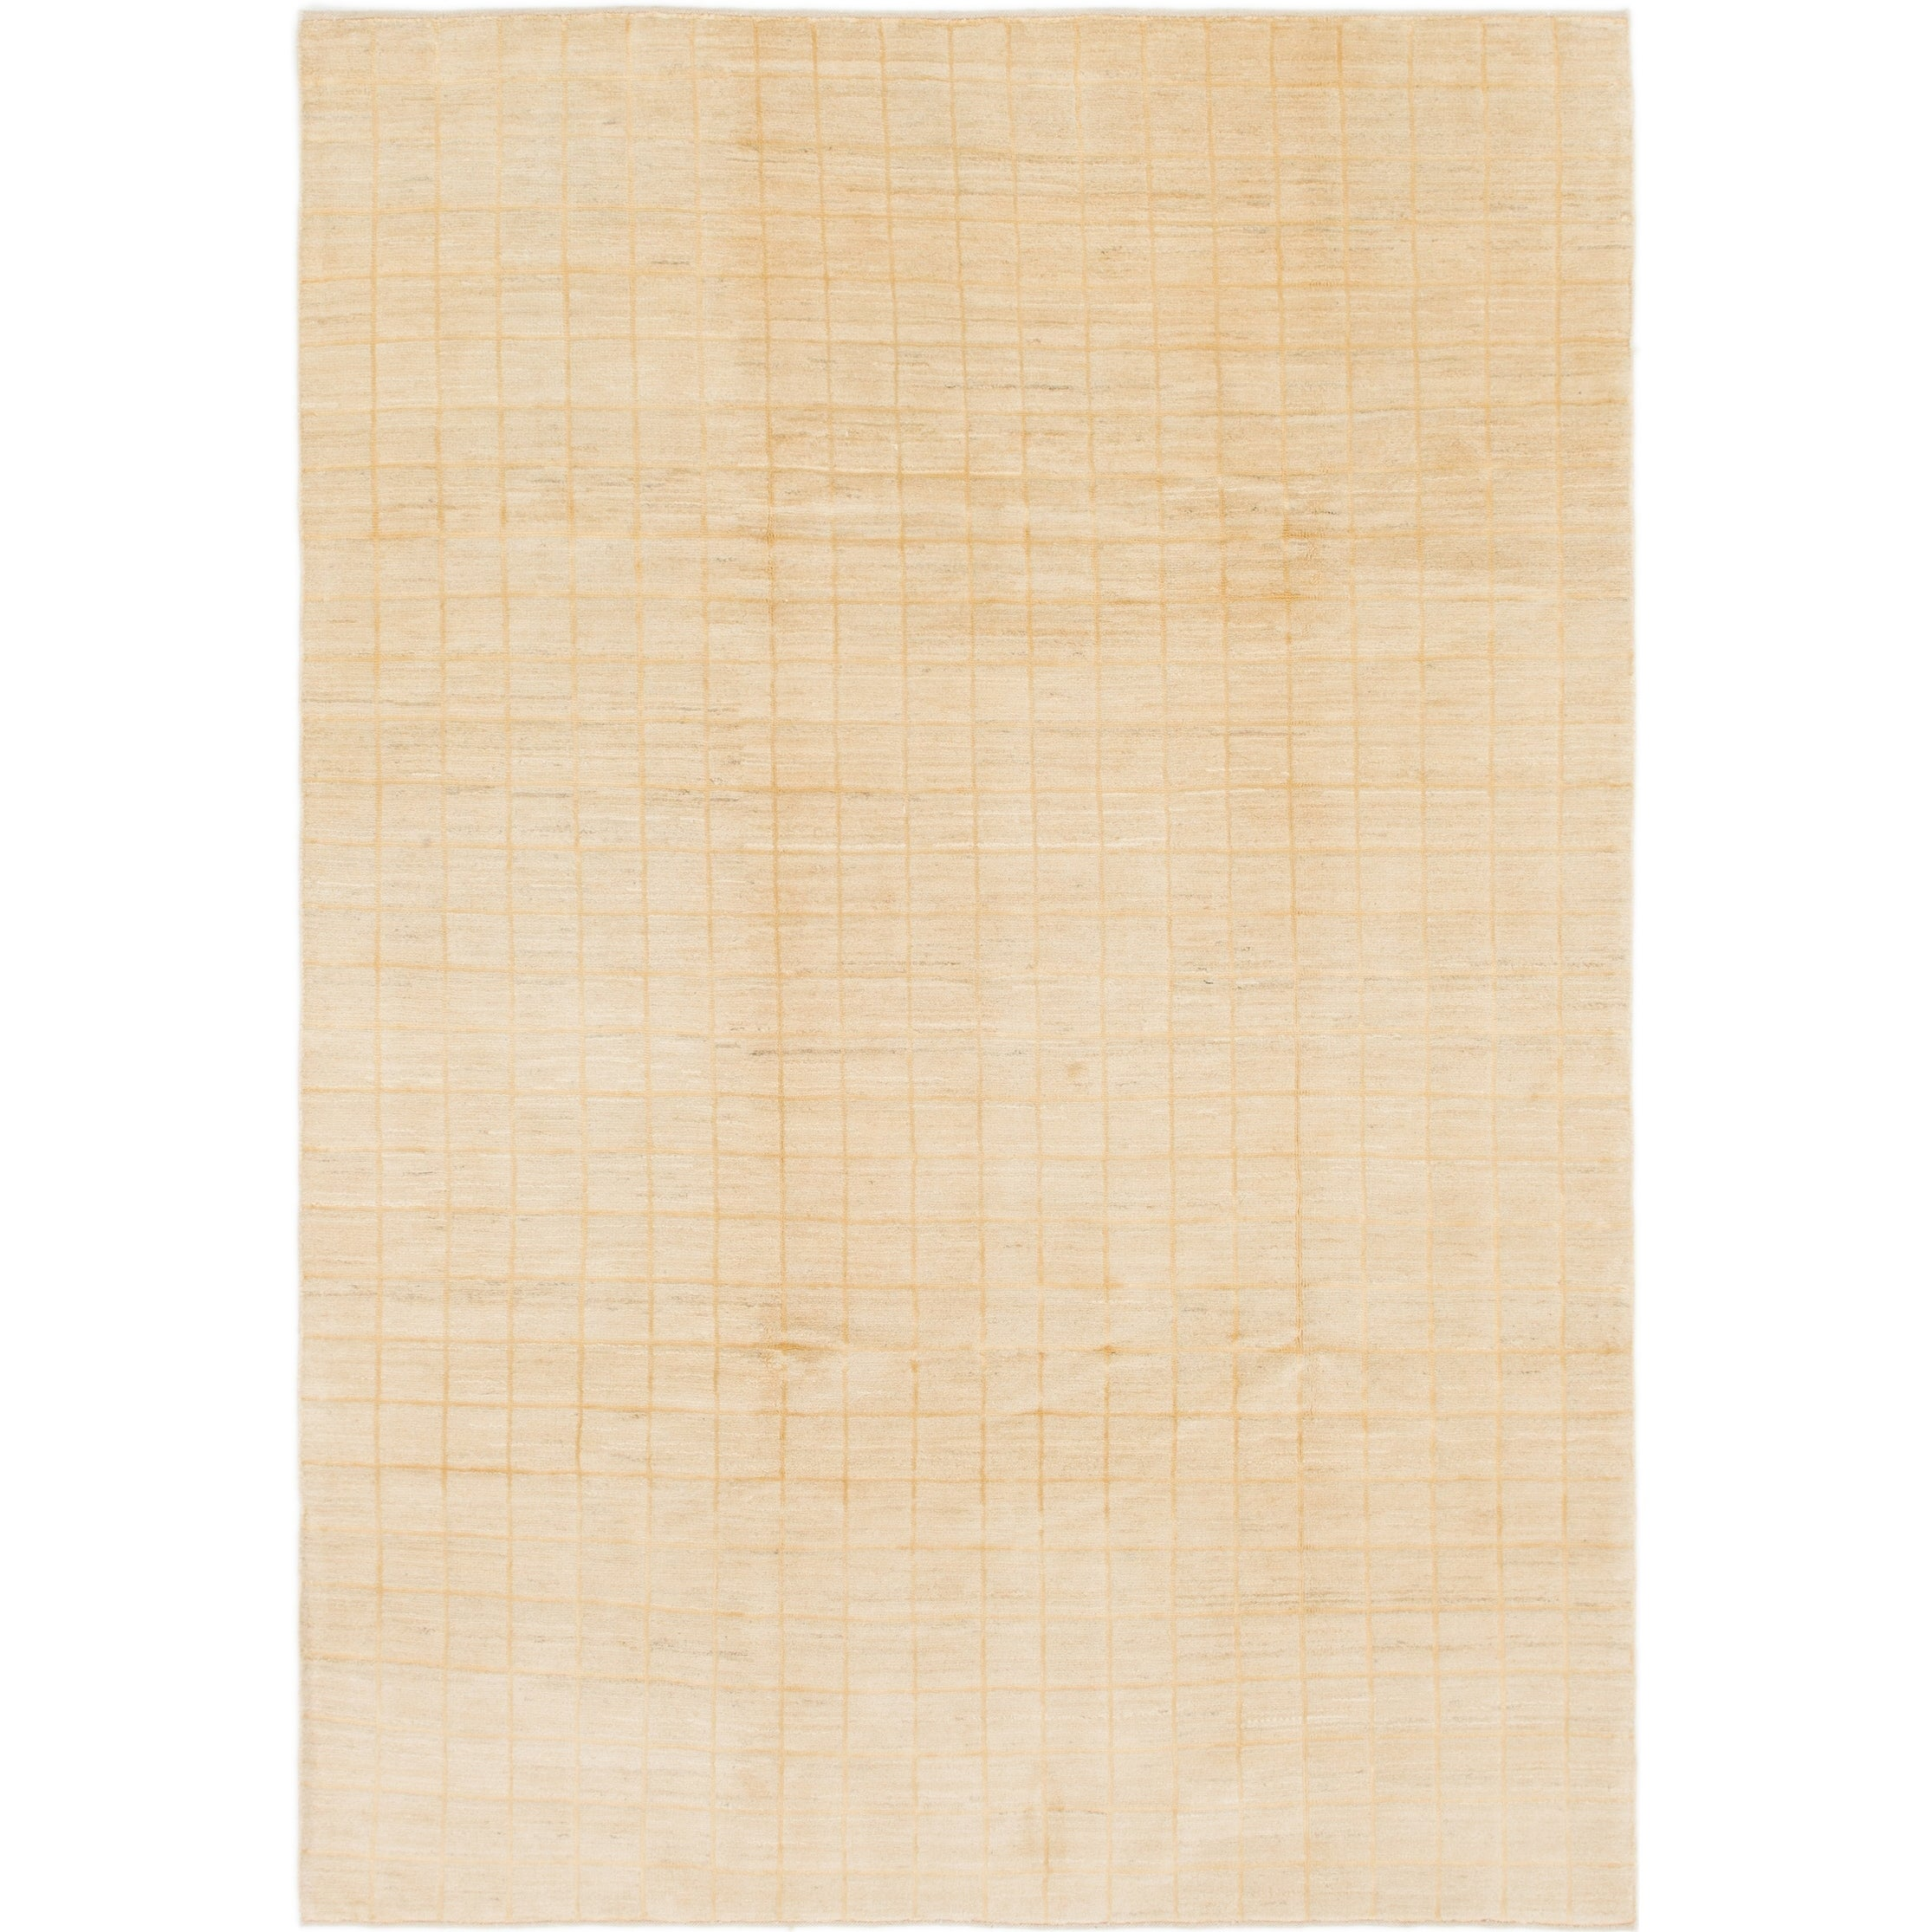 Hand Knotted Kashkuli Gabbeh Wool Area Rug - 6 6 x 9 5 (Cream - 6 6 x 9 5)